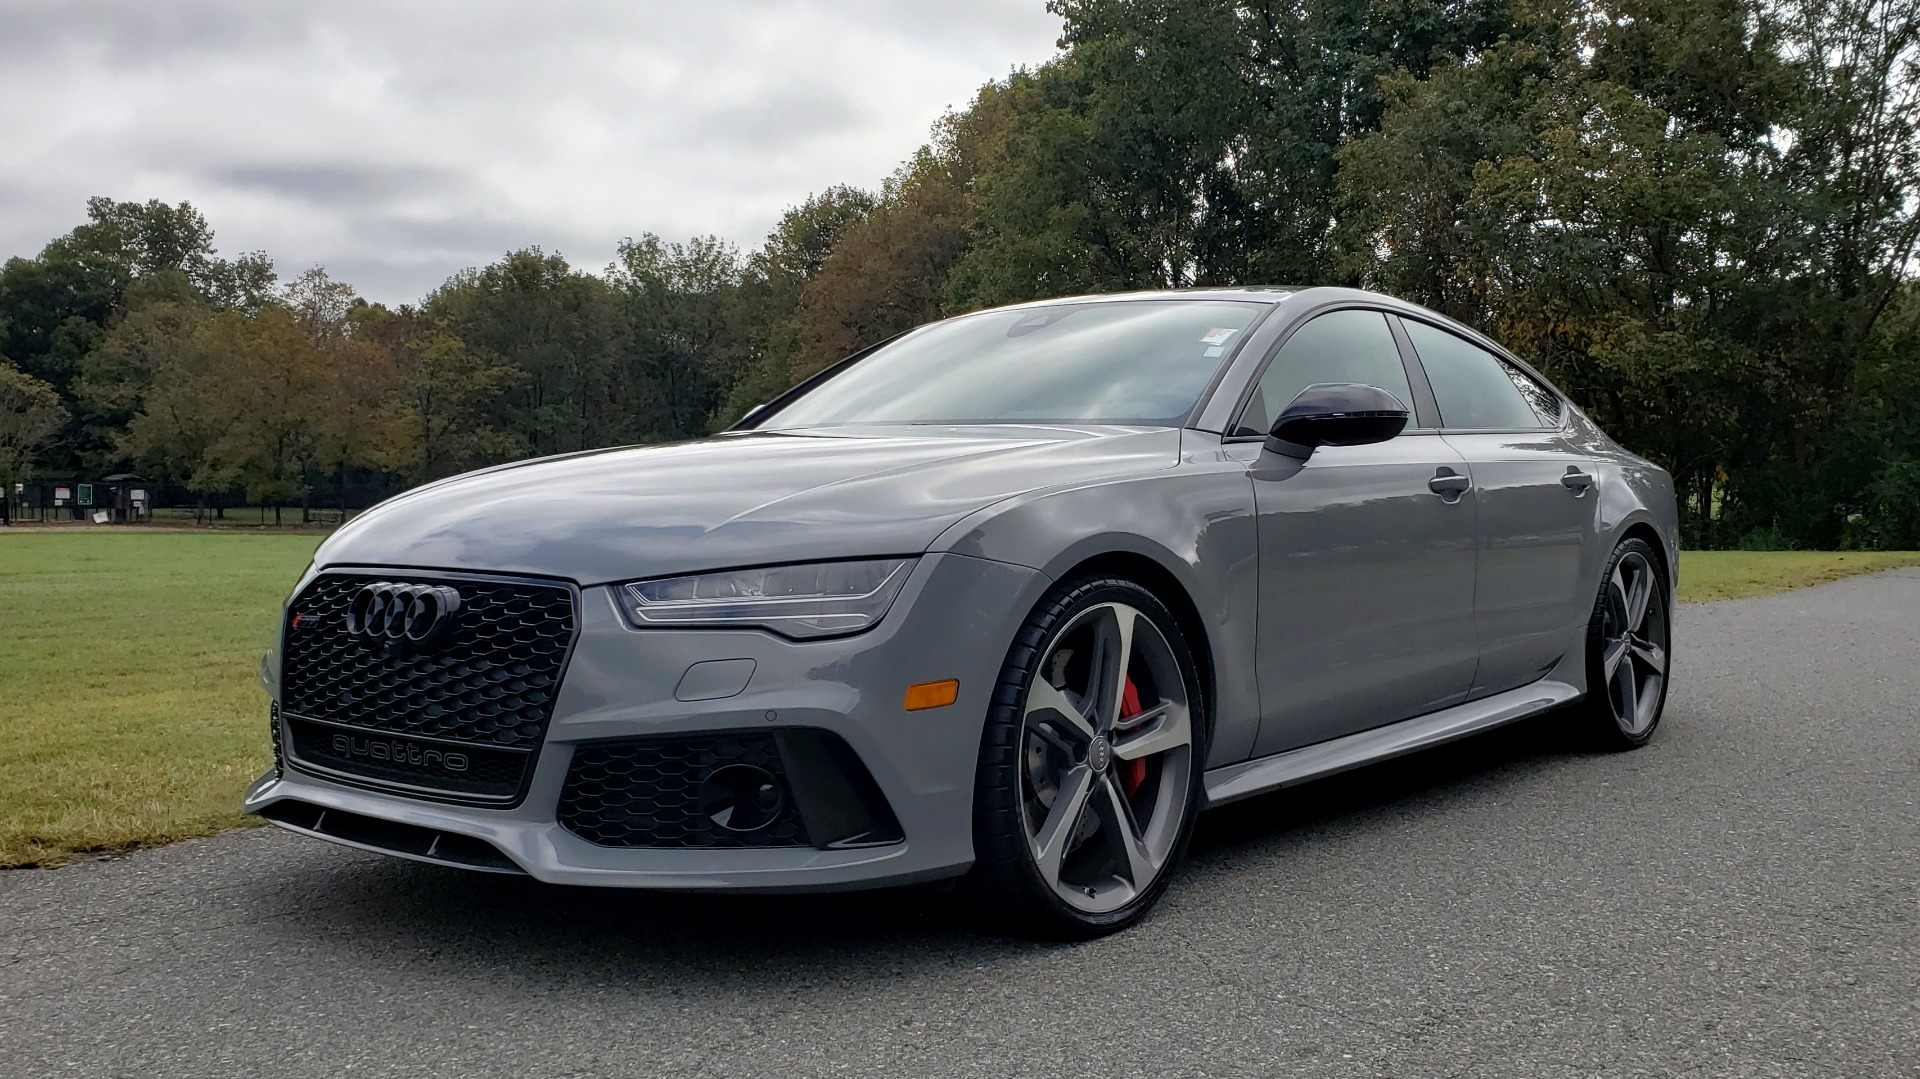 Used 2018 Audi RS 7 for sale Sold at Formula One Imports in Charlotte NC 28227 6